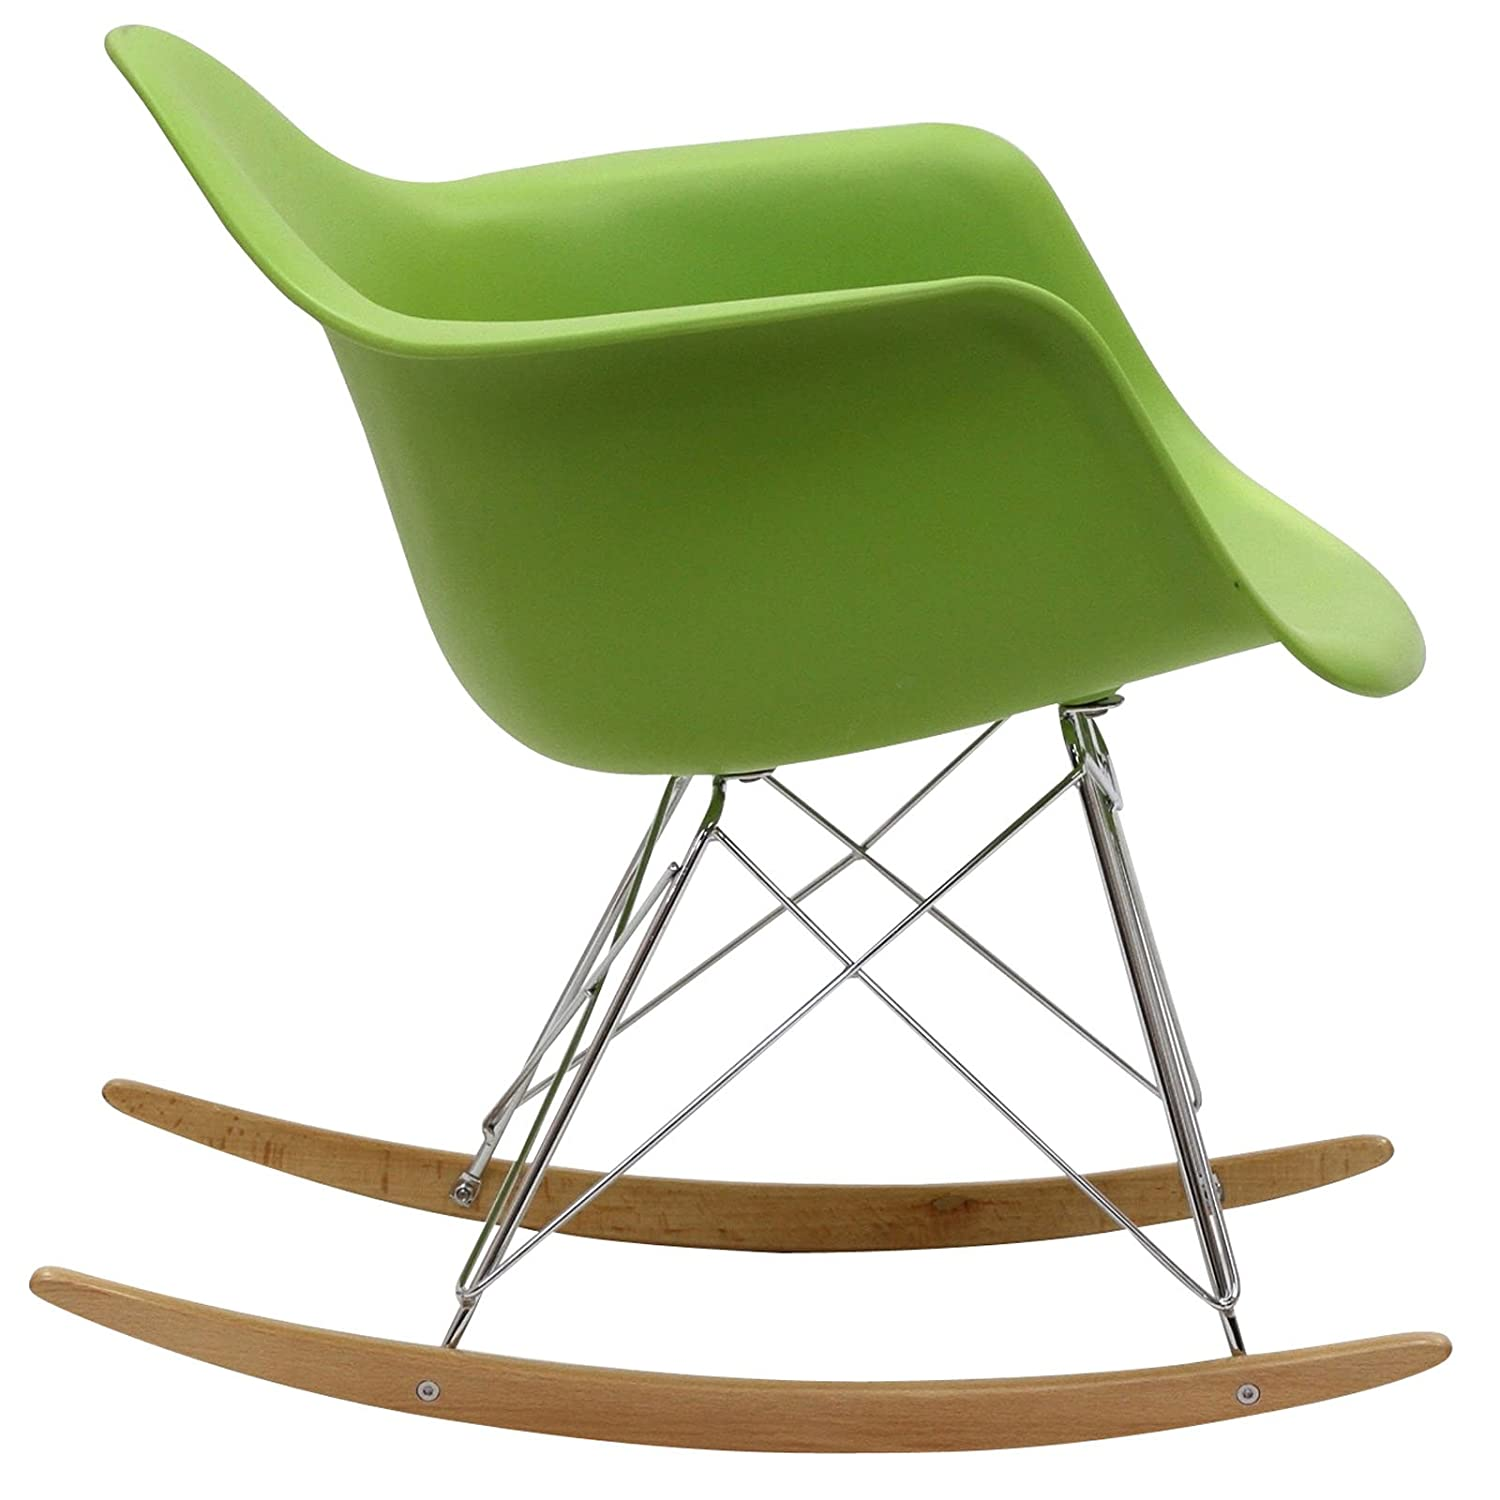 eames rocking chair green. amazon.com: modway molded plastic armchair rocker in green: kitchen \u0026 dining eames rocking chair green a